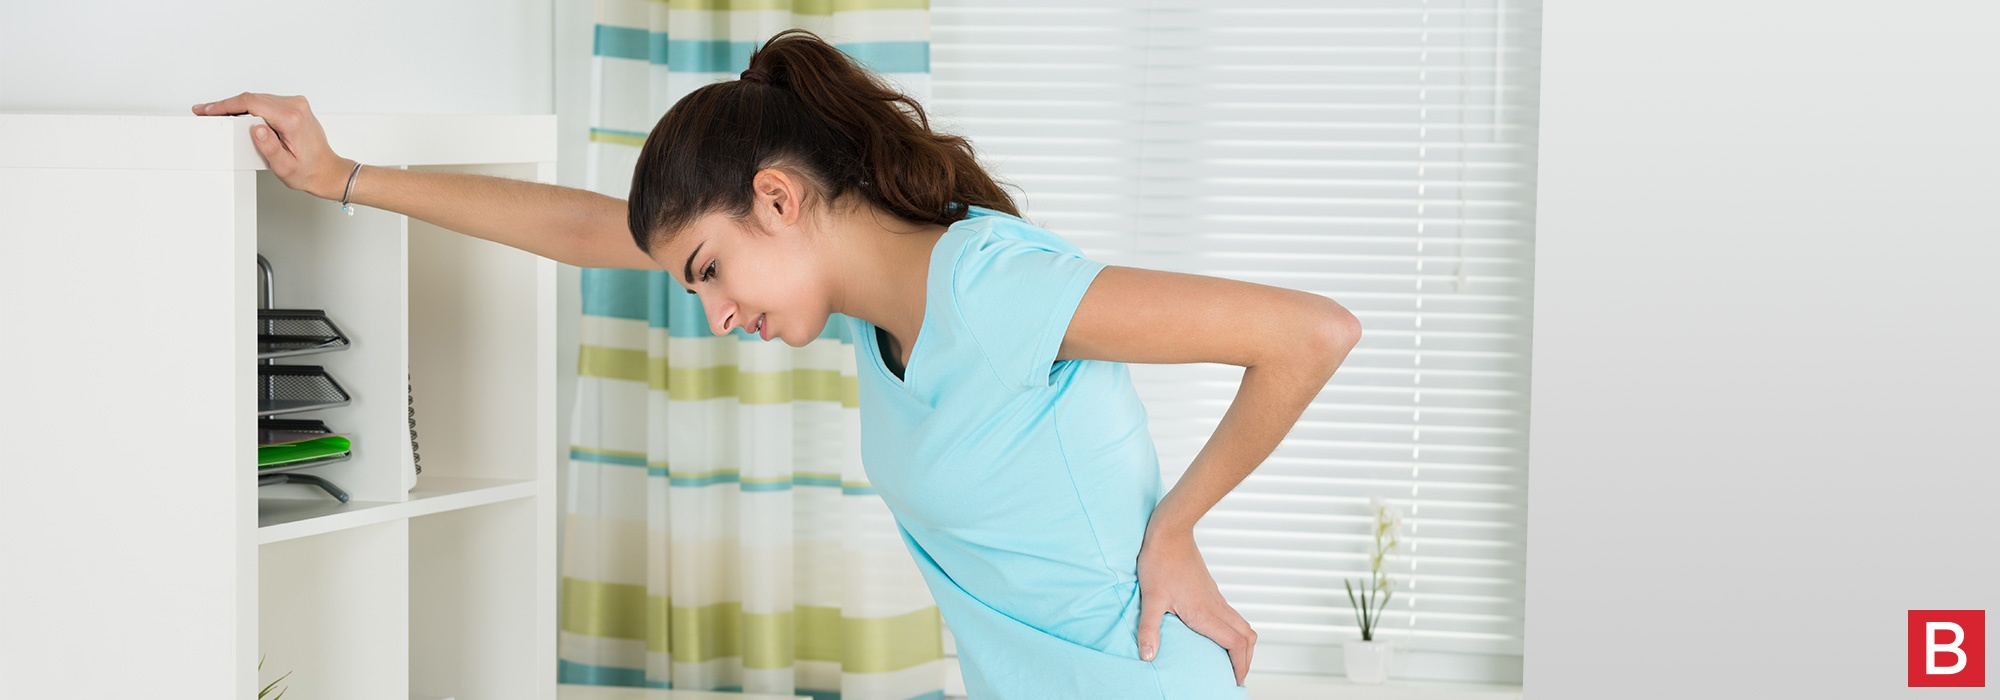 how-to-eliminate-back-pain-as-nurse-2000x700.jpg